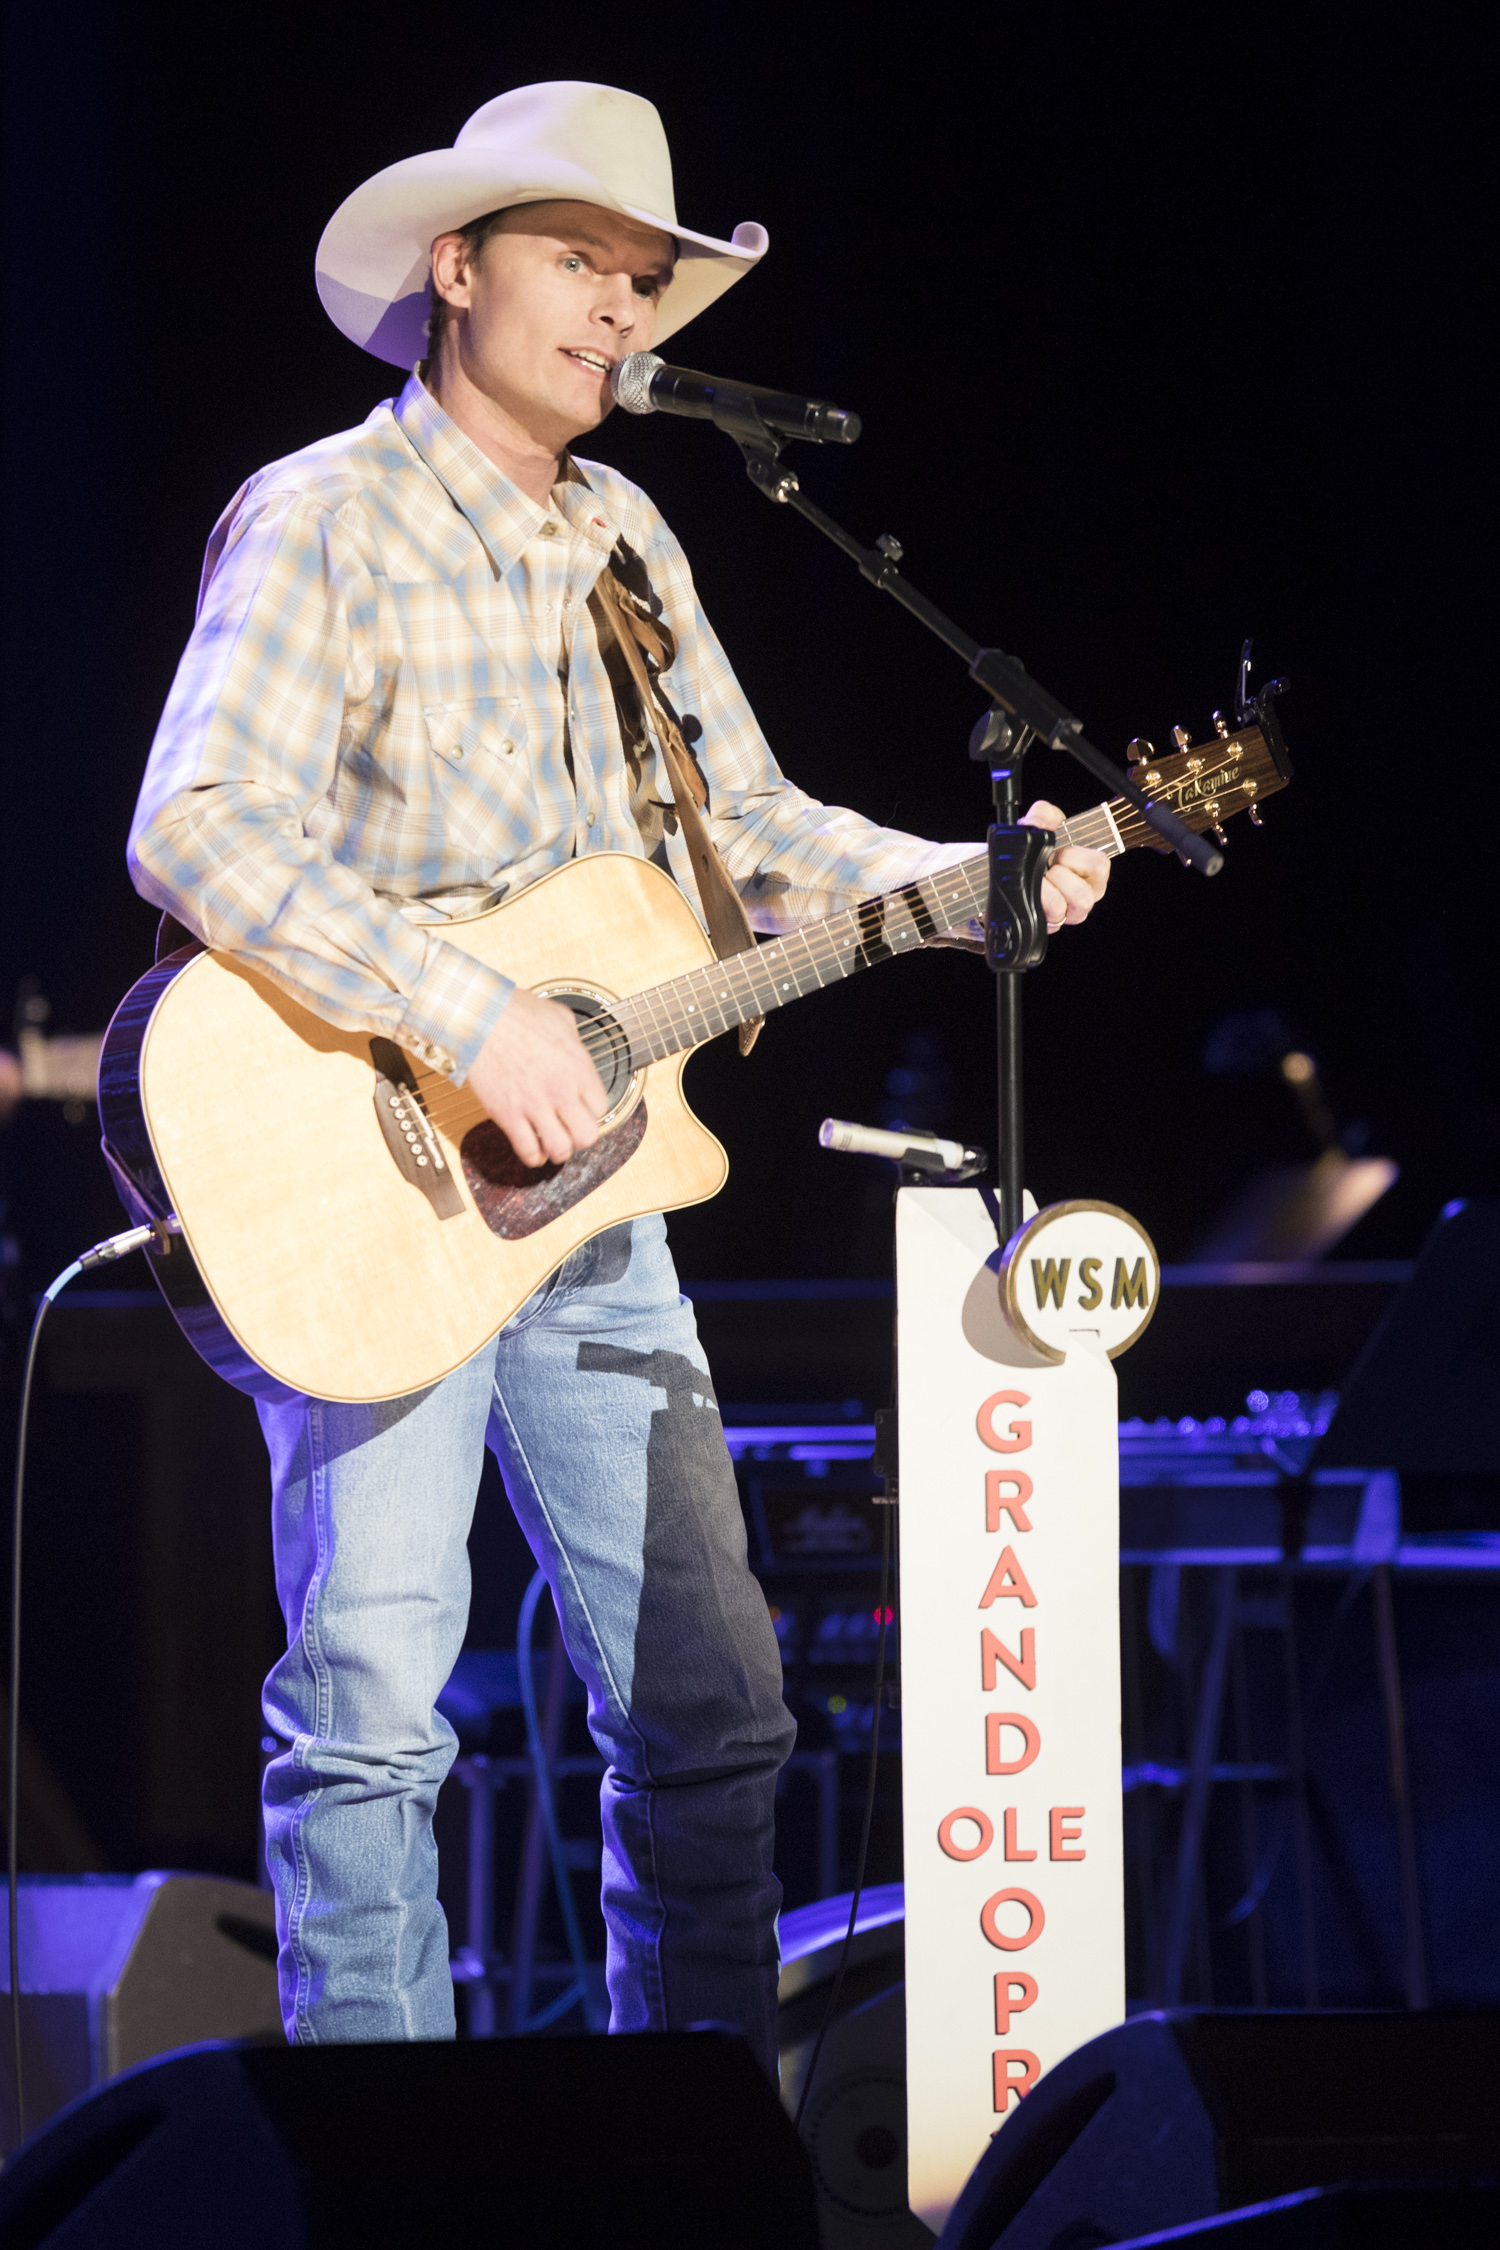 Ned LeDoux invited to make his Grand Ole Opry debut Friday night-Ned LeDoux DEBUT by Chris Hollo